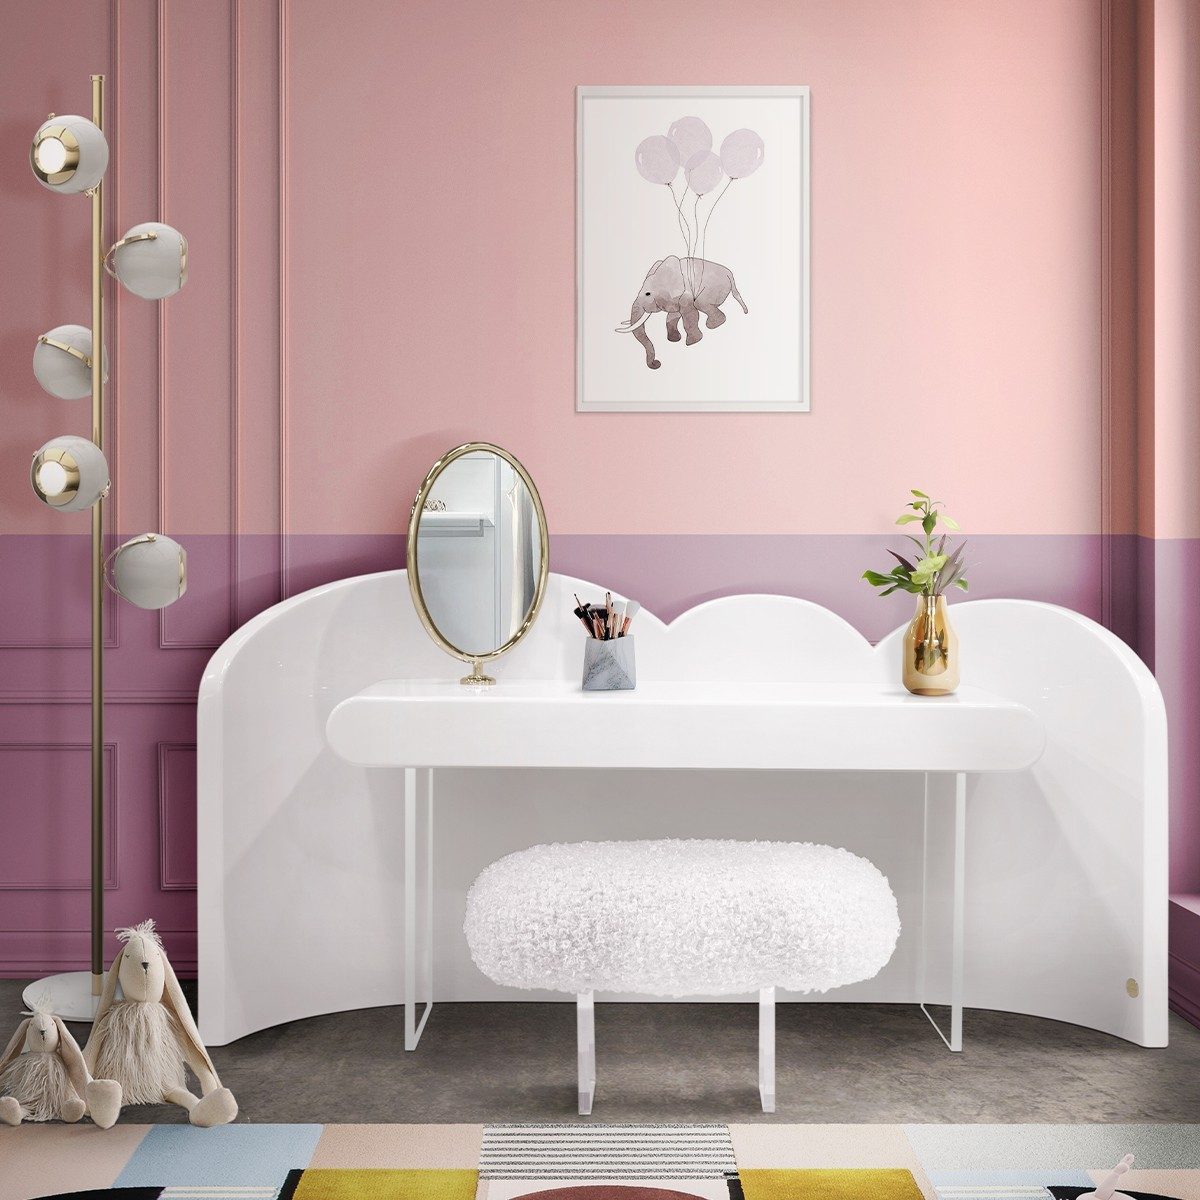 Consolas lujuosas: 7 piezas poderosas para un proyecto elegante consolas lujuosas Consolas lujuosas: 7 piezas poderosas para un proyecto elegante cloud dressing table vanity console circu magical furniture ambience 1